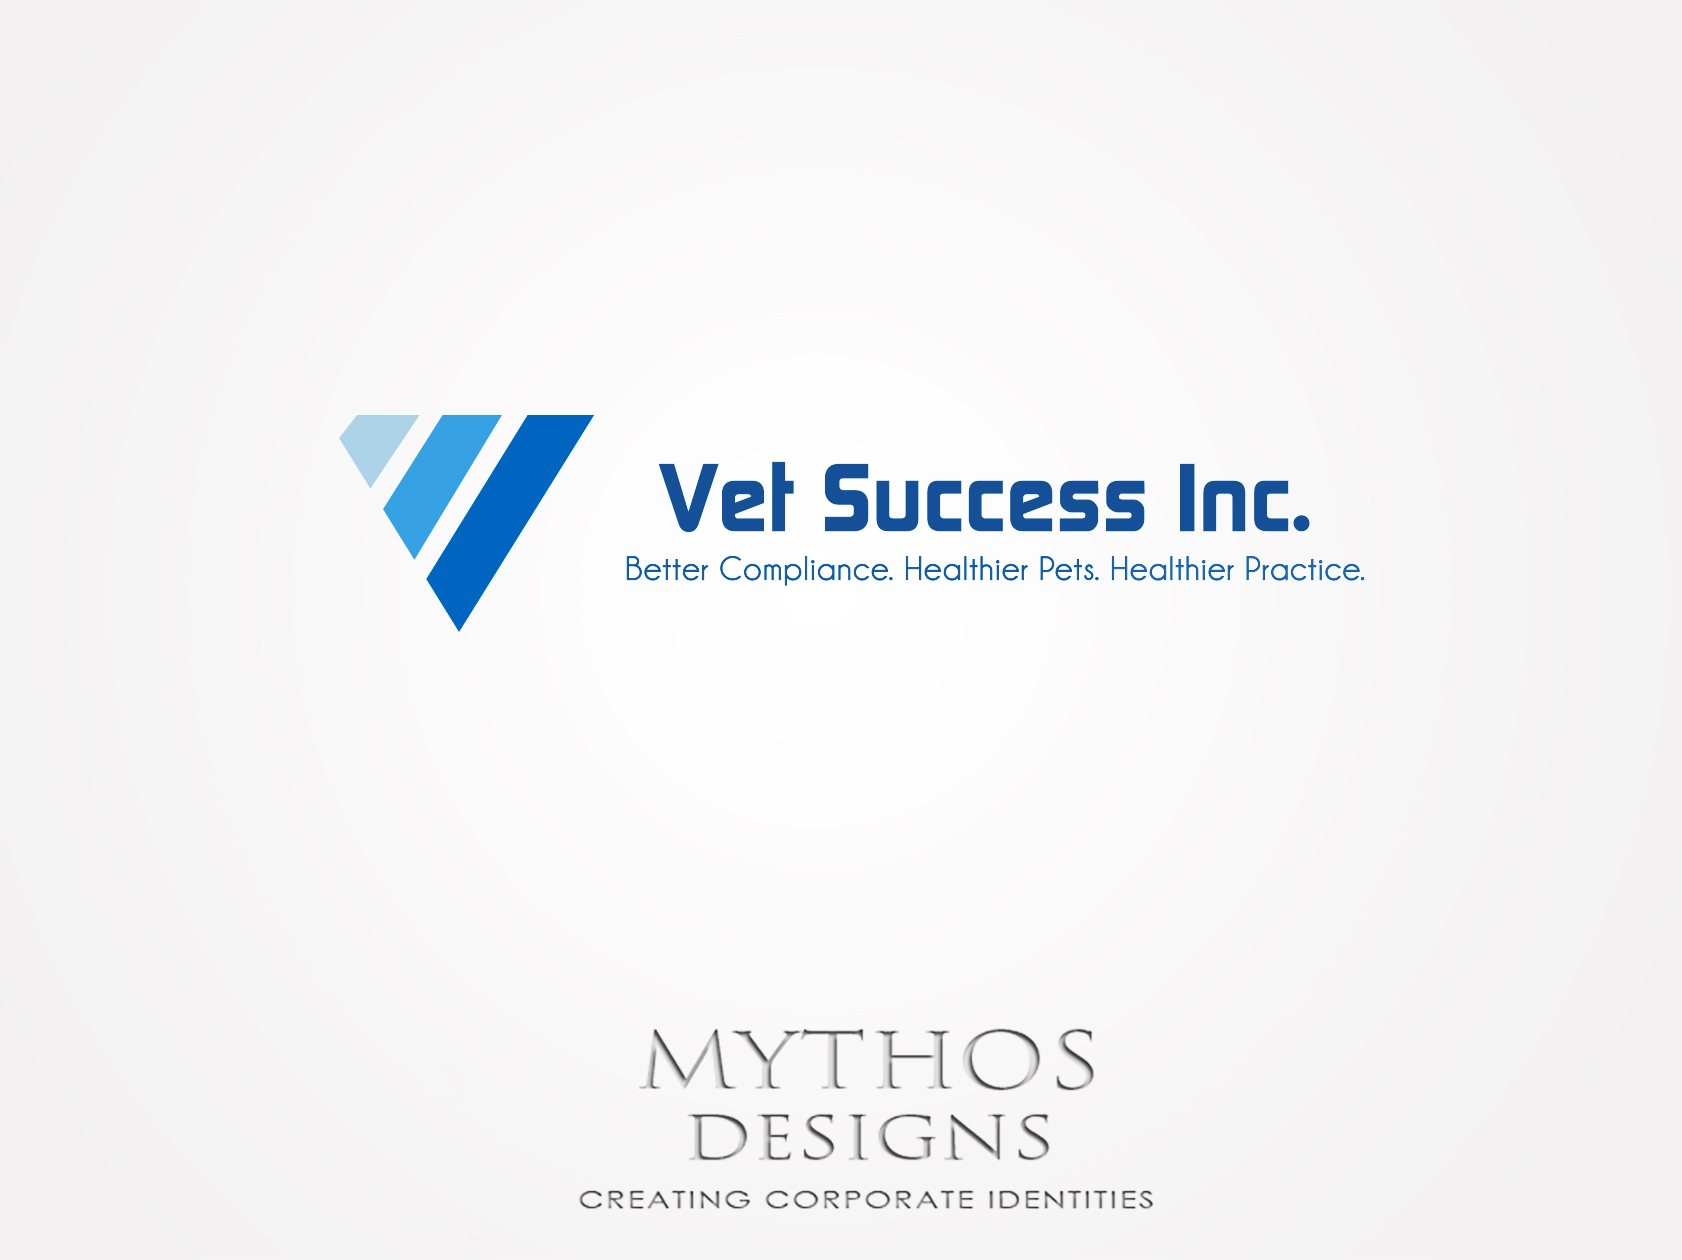 Logo Design by Mythos Designs - Entry No. 124 in the Logo Design Contest Imaginative Logo Design for Vet Success Inc..